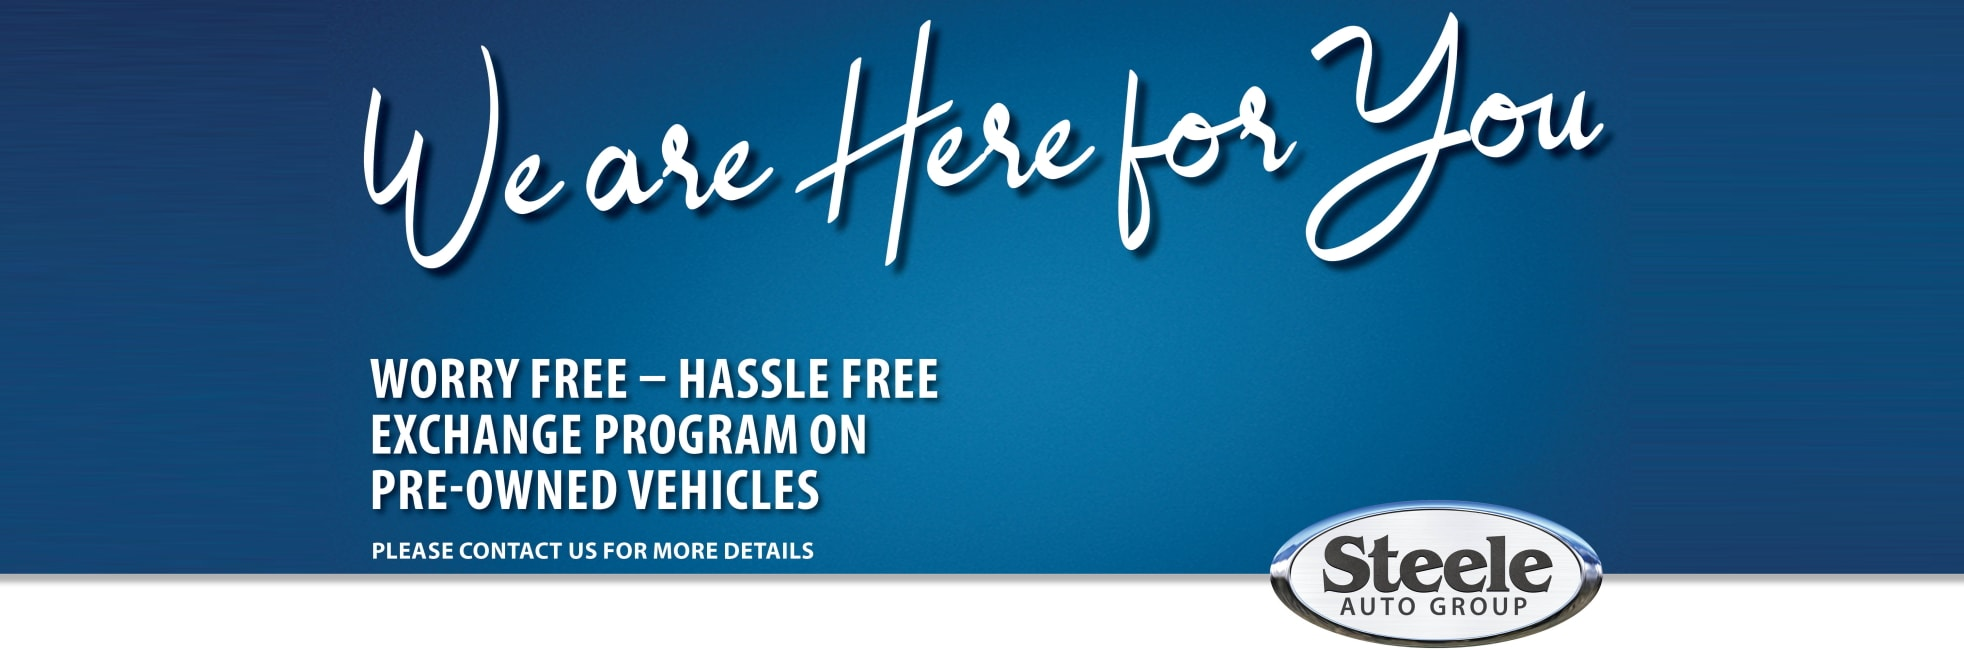 We are here for you - Exchange Program at Steele Hyundai